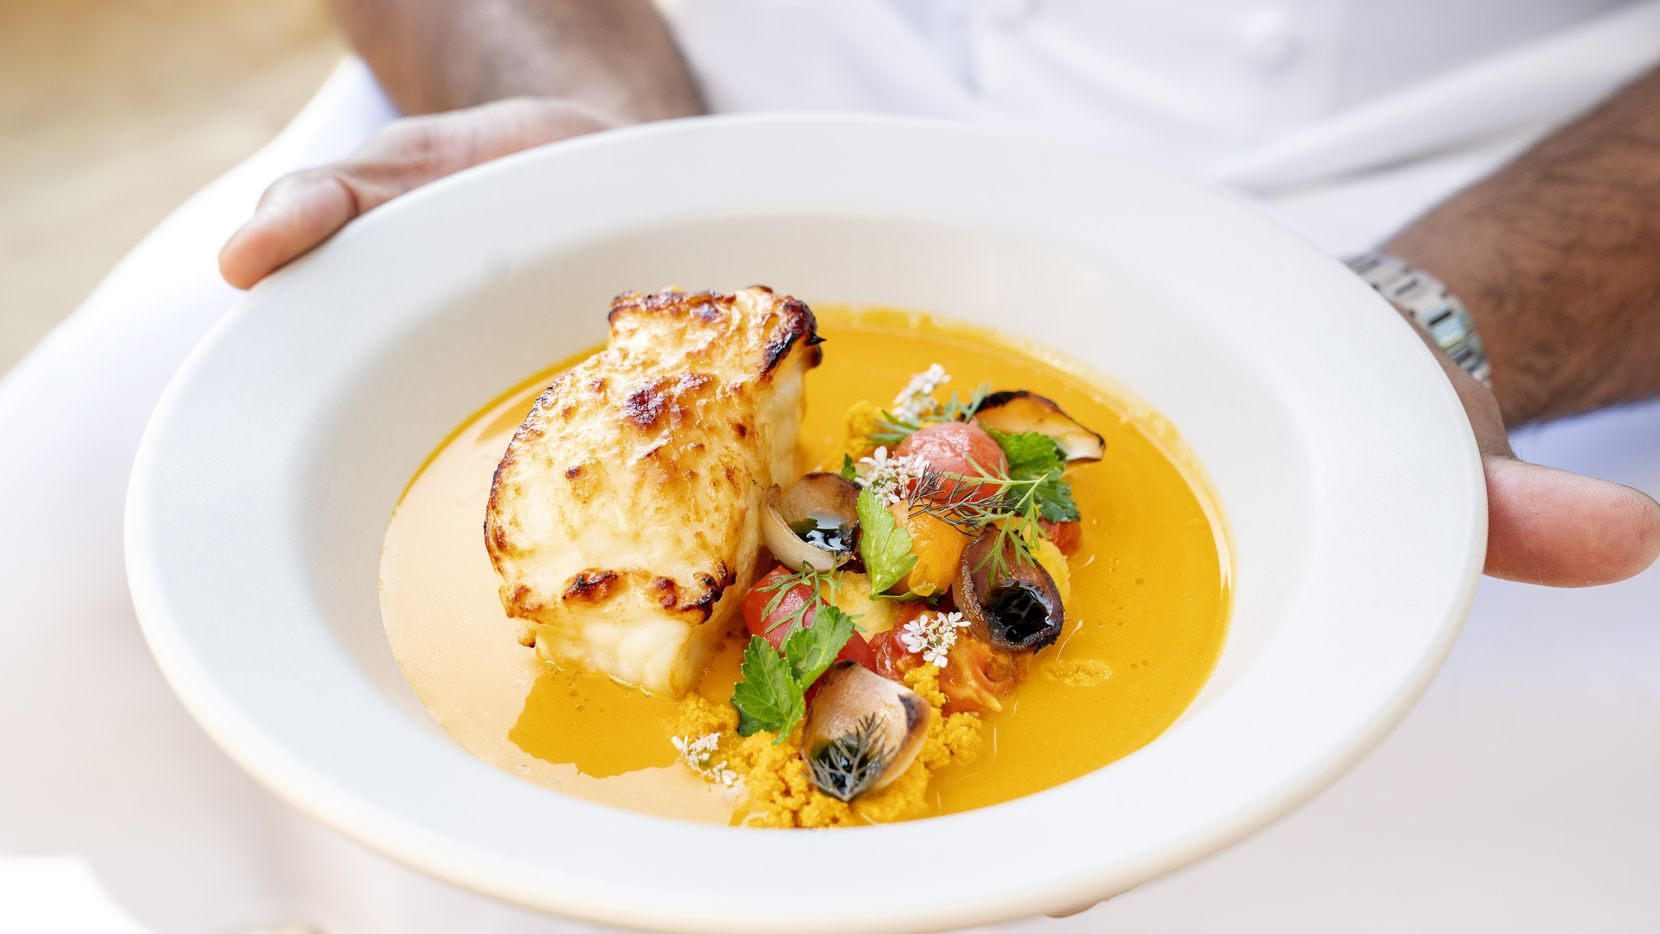 One of the most alluring parts of the Village's new restaurant complex is Meridian, a New American restaurant with Brazilian influences from chef Junior Borges, who was born and raised in Brazil. A fish stew called moqueca is on the menu in honor of his grandmother.